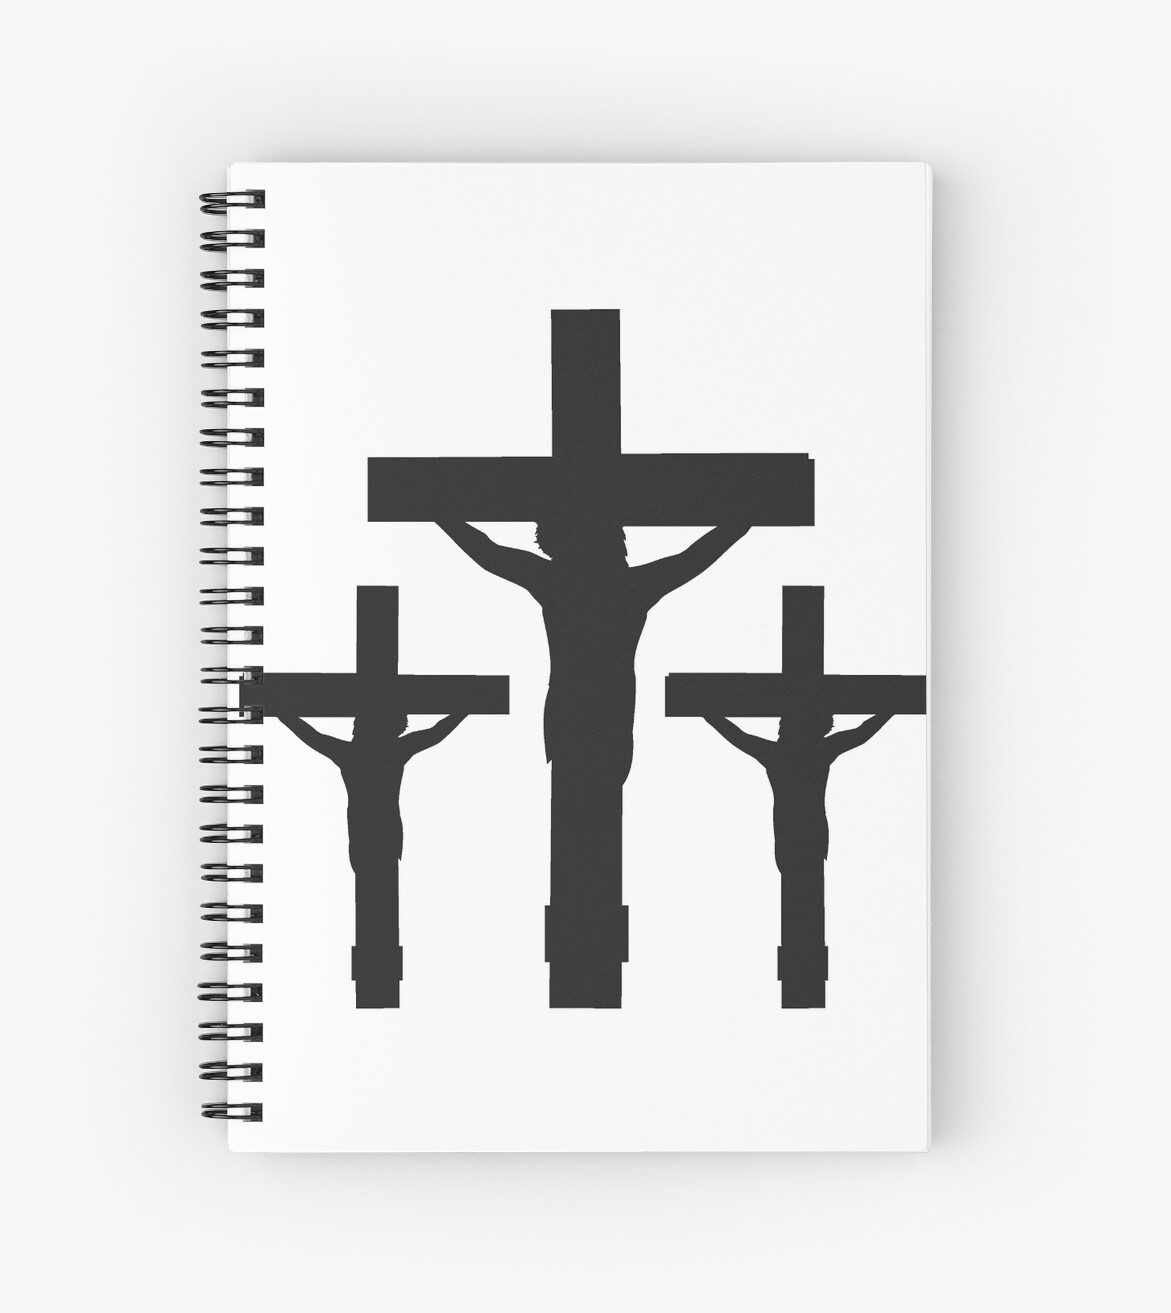 3 Crosses Younger Black Dead Nailed Cross Symbol Team Crew Friends